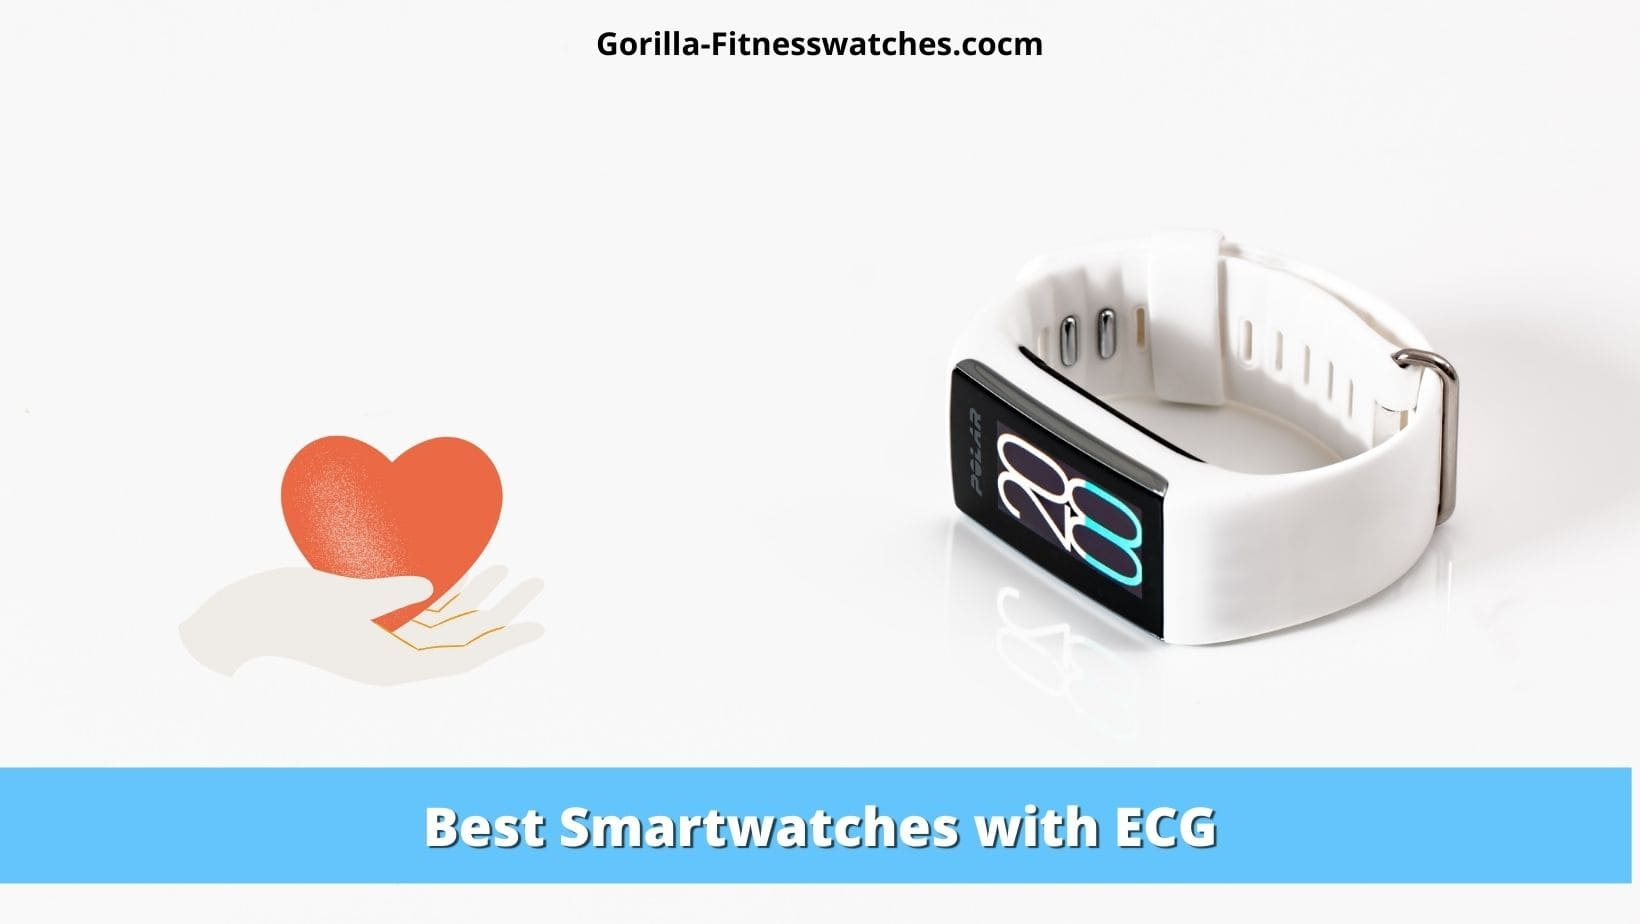 Best Smartwatches with ECG in 2021